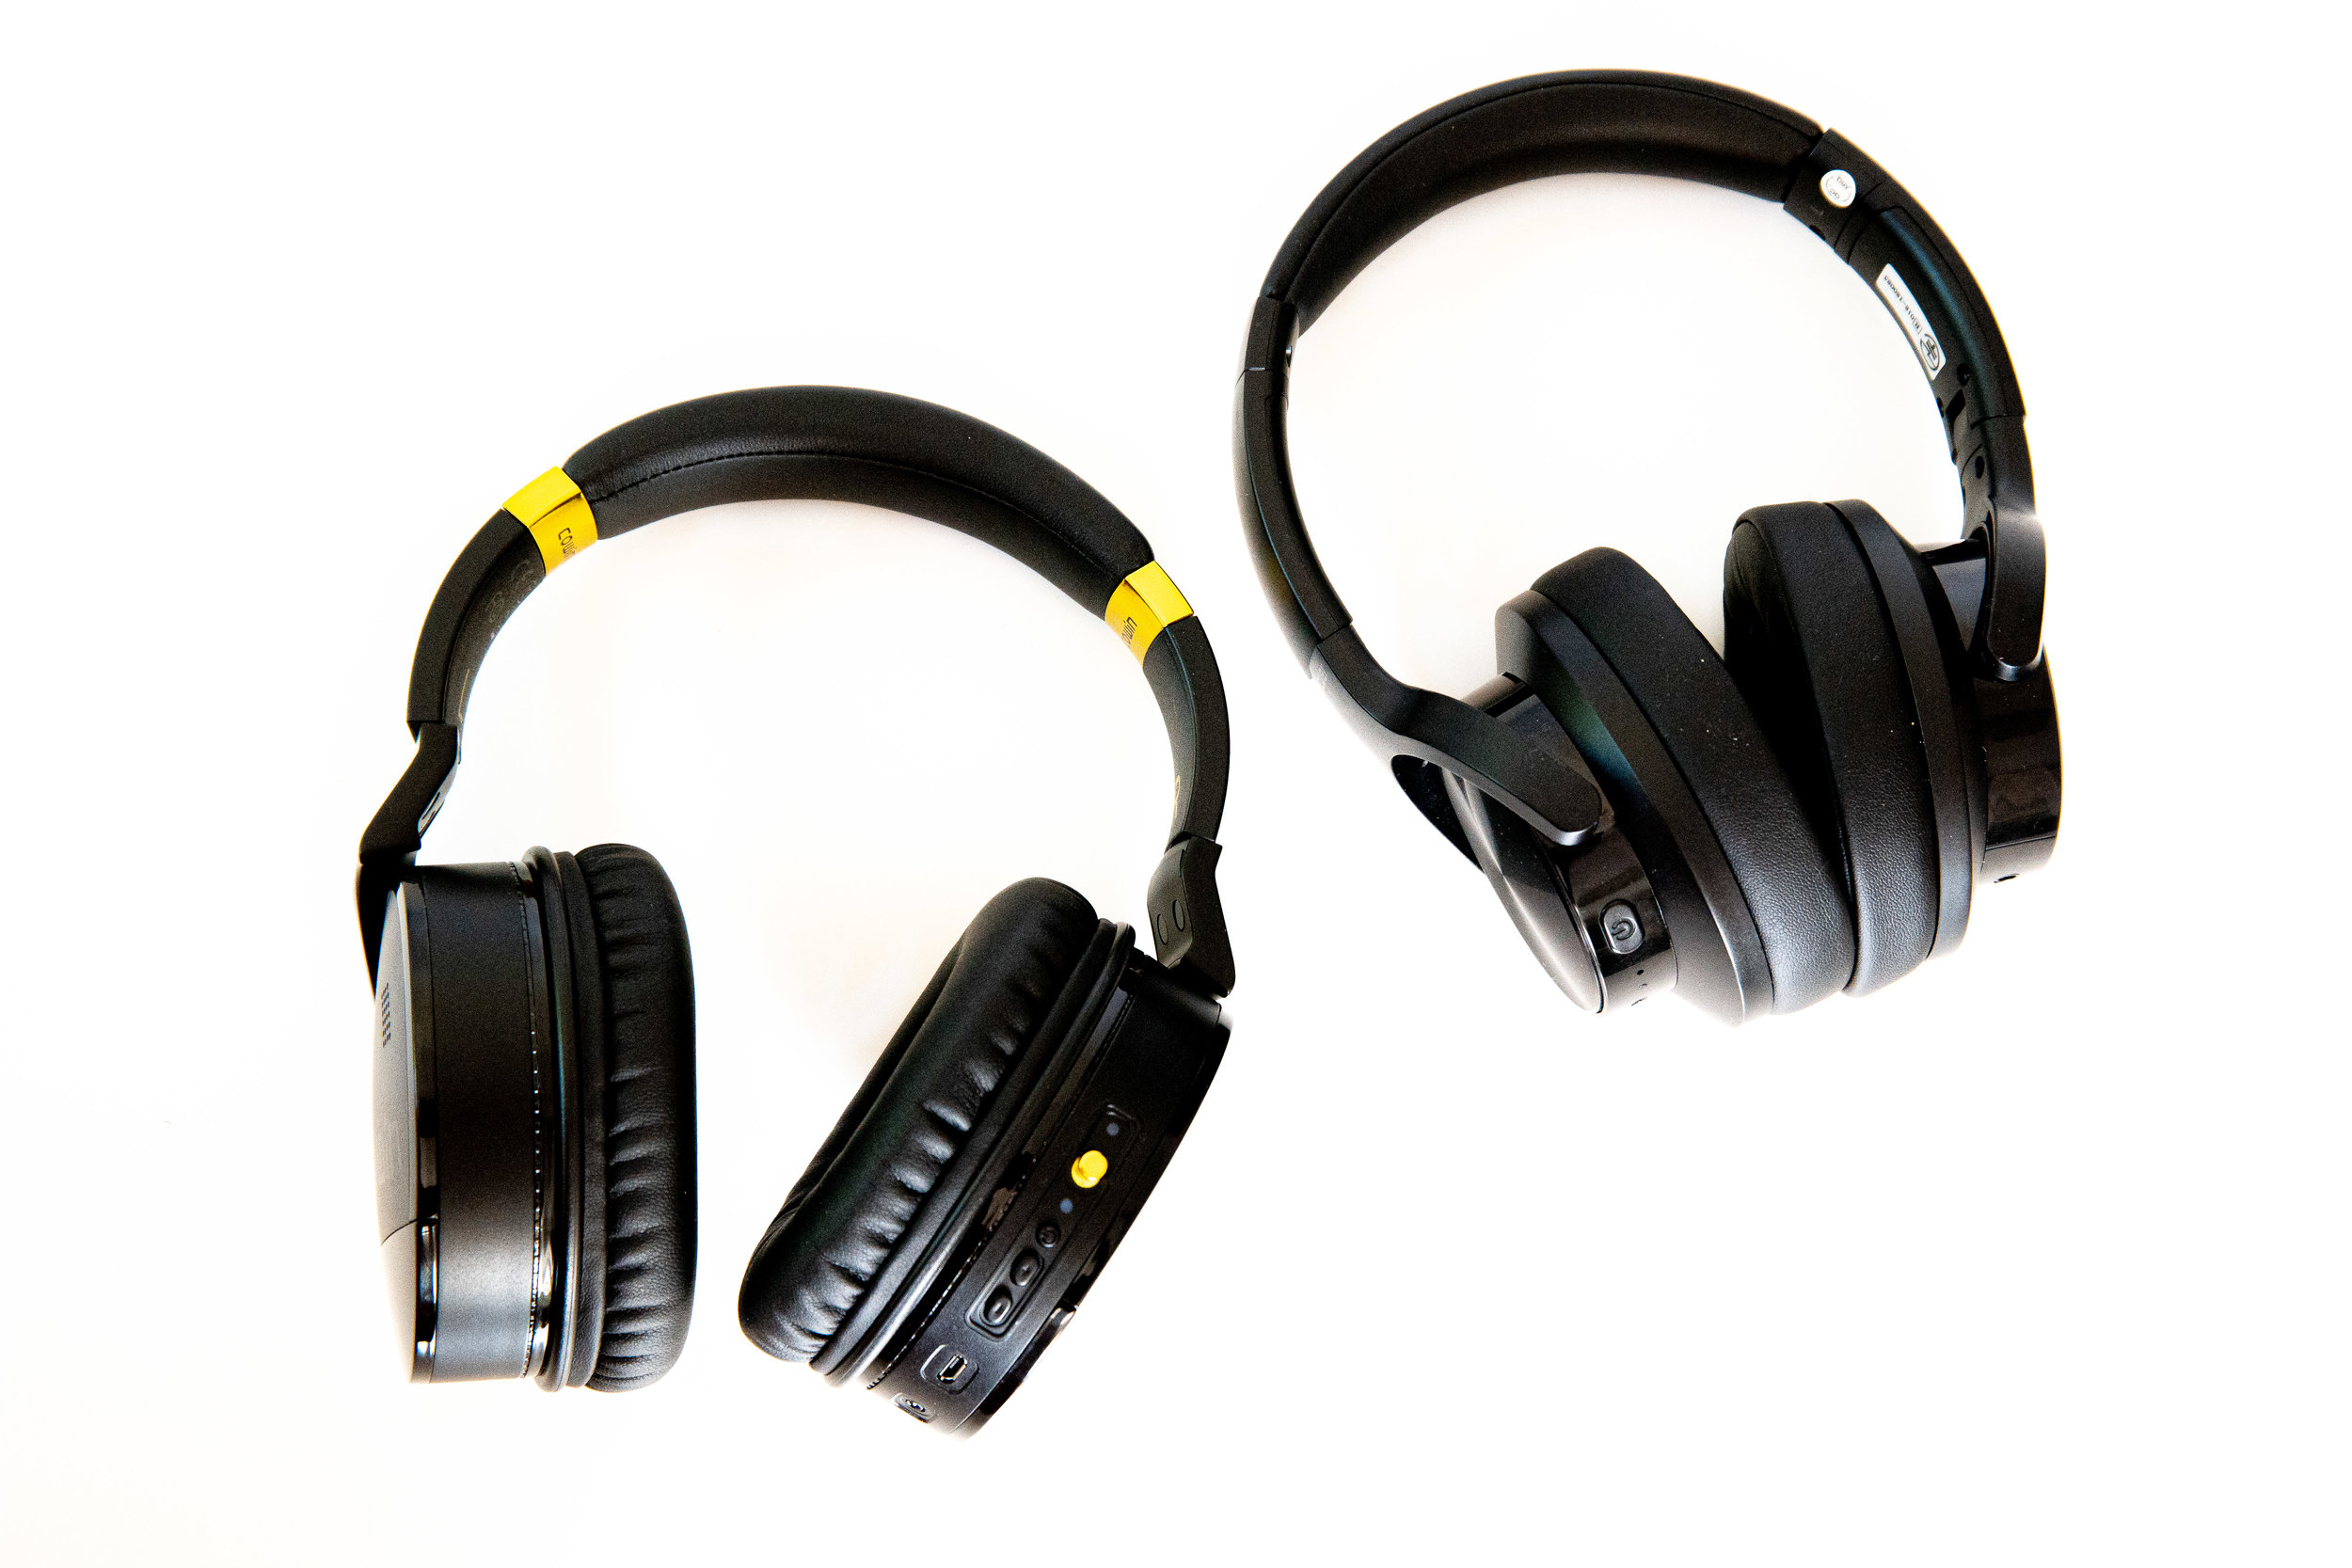 20190712_Headphones_SAM0527.jpg